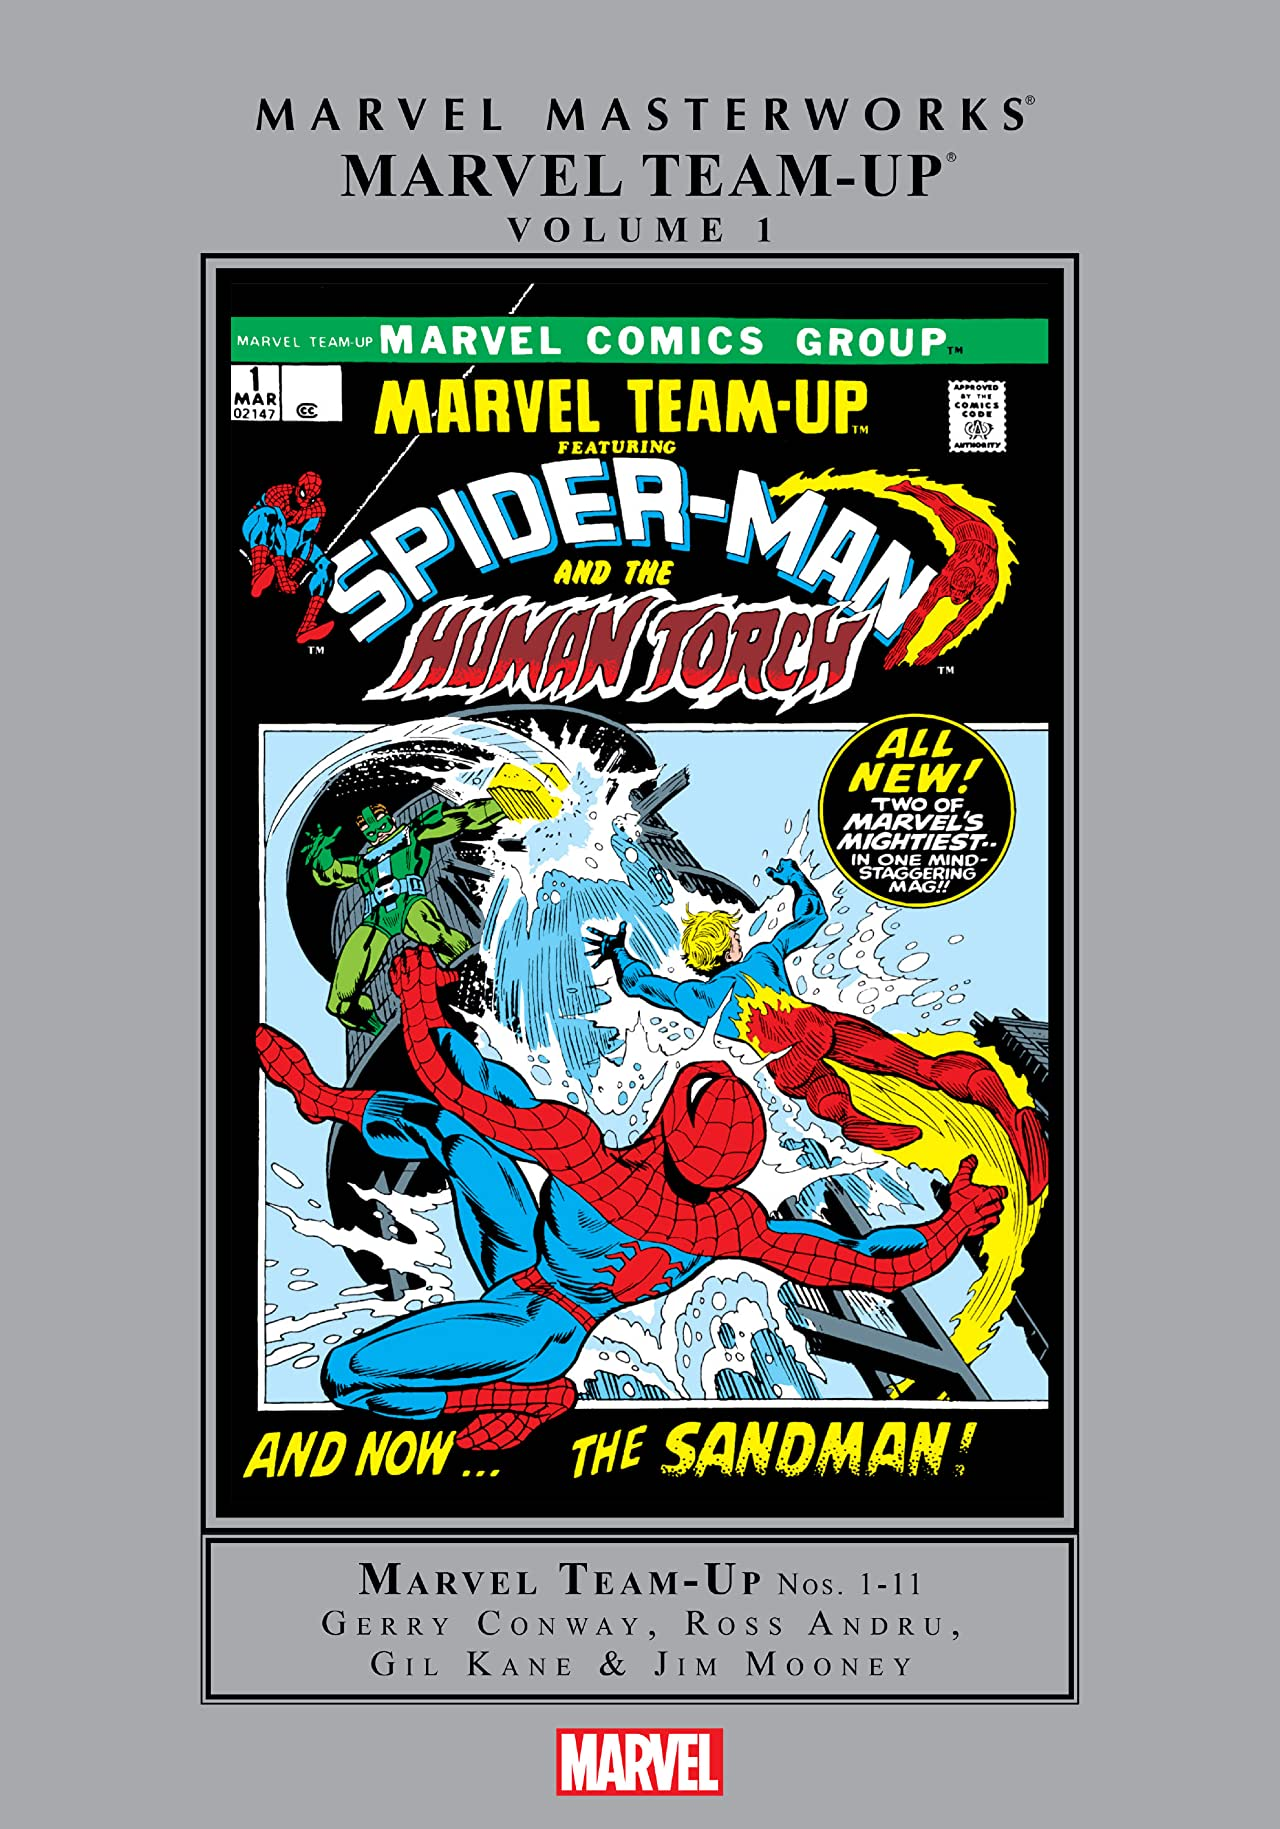 Marvel Team-Up Masterworks Vol. 1